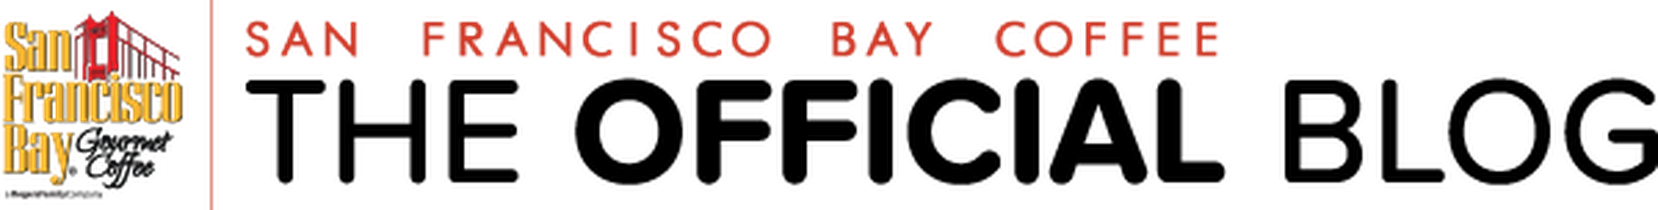 San Francisco Bay Coffee Promo Codes: Up to 50% off